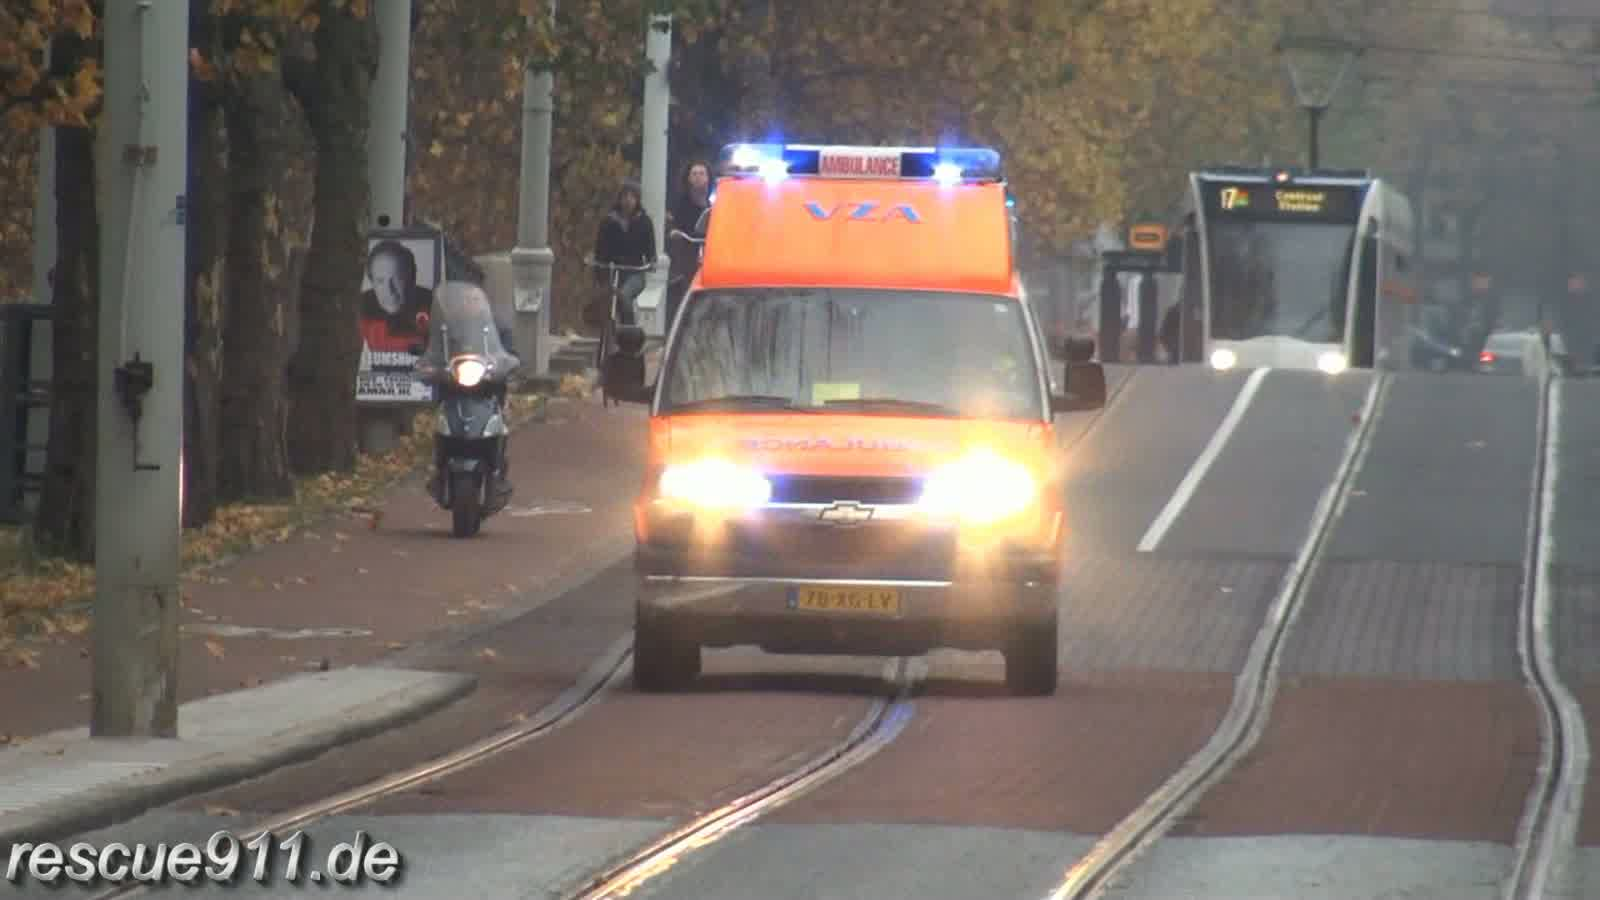 Ambulance VZA Amsterdam (collection) (stream)